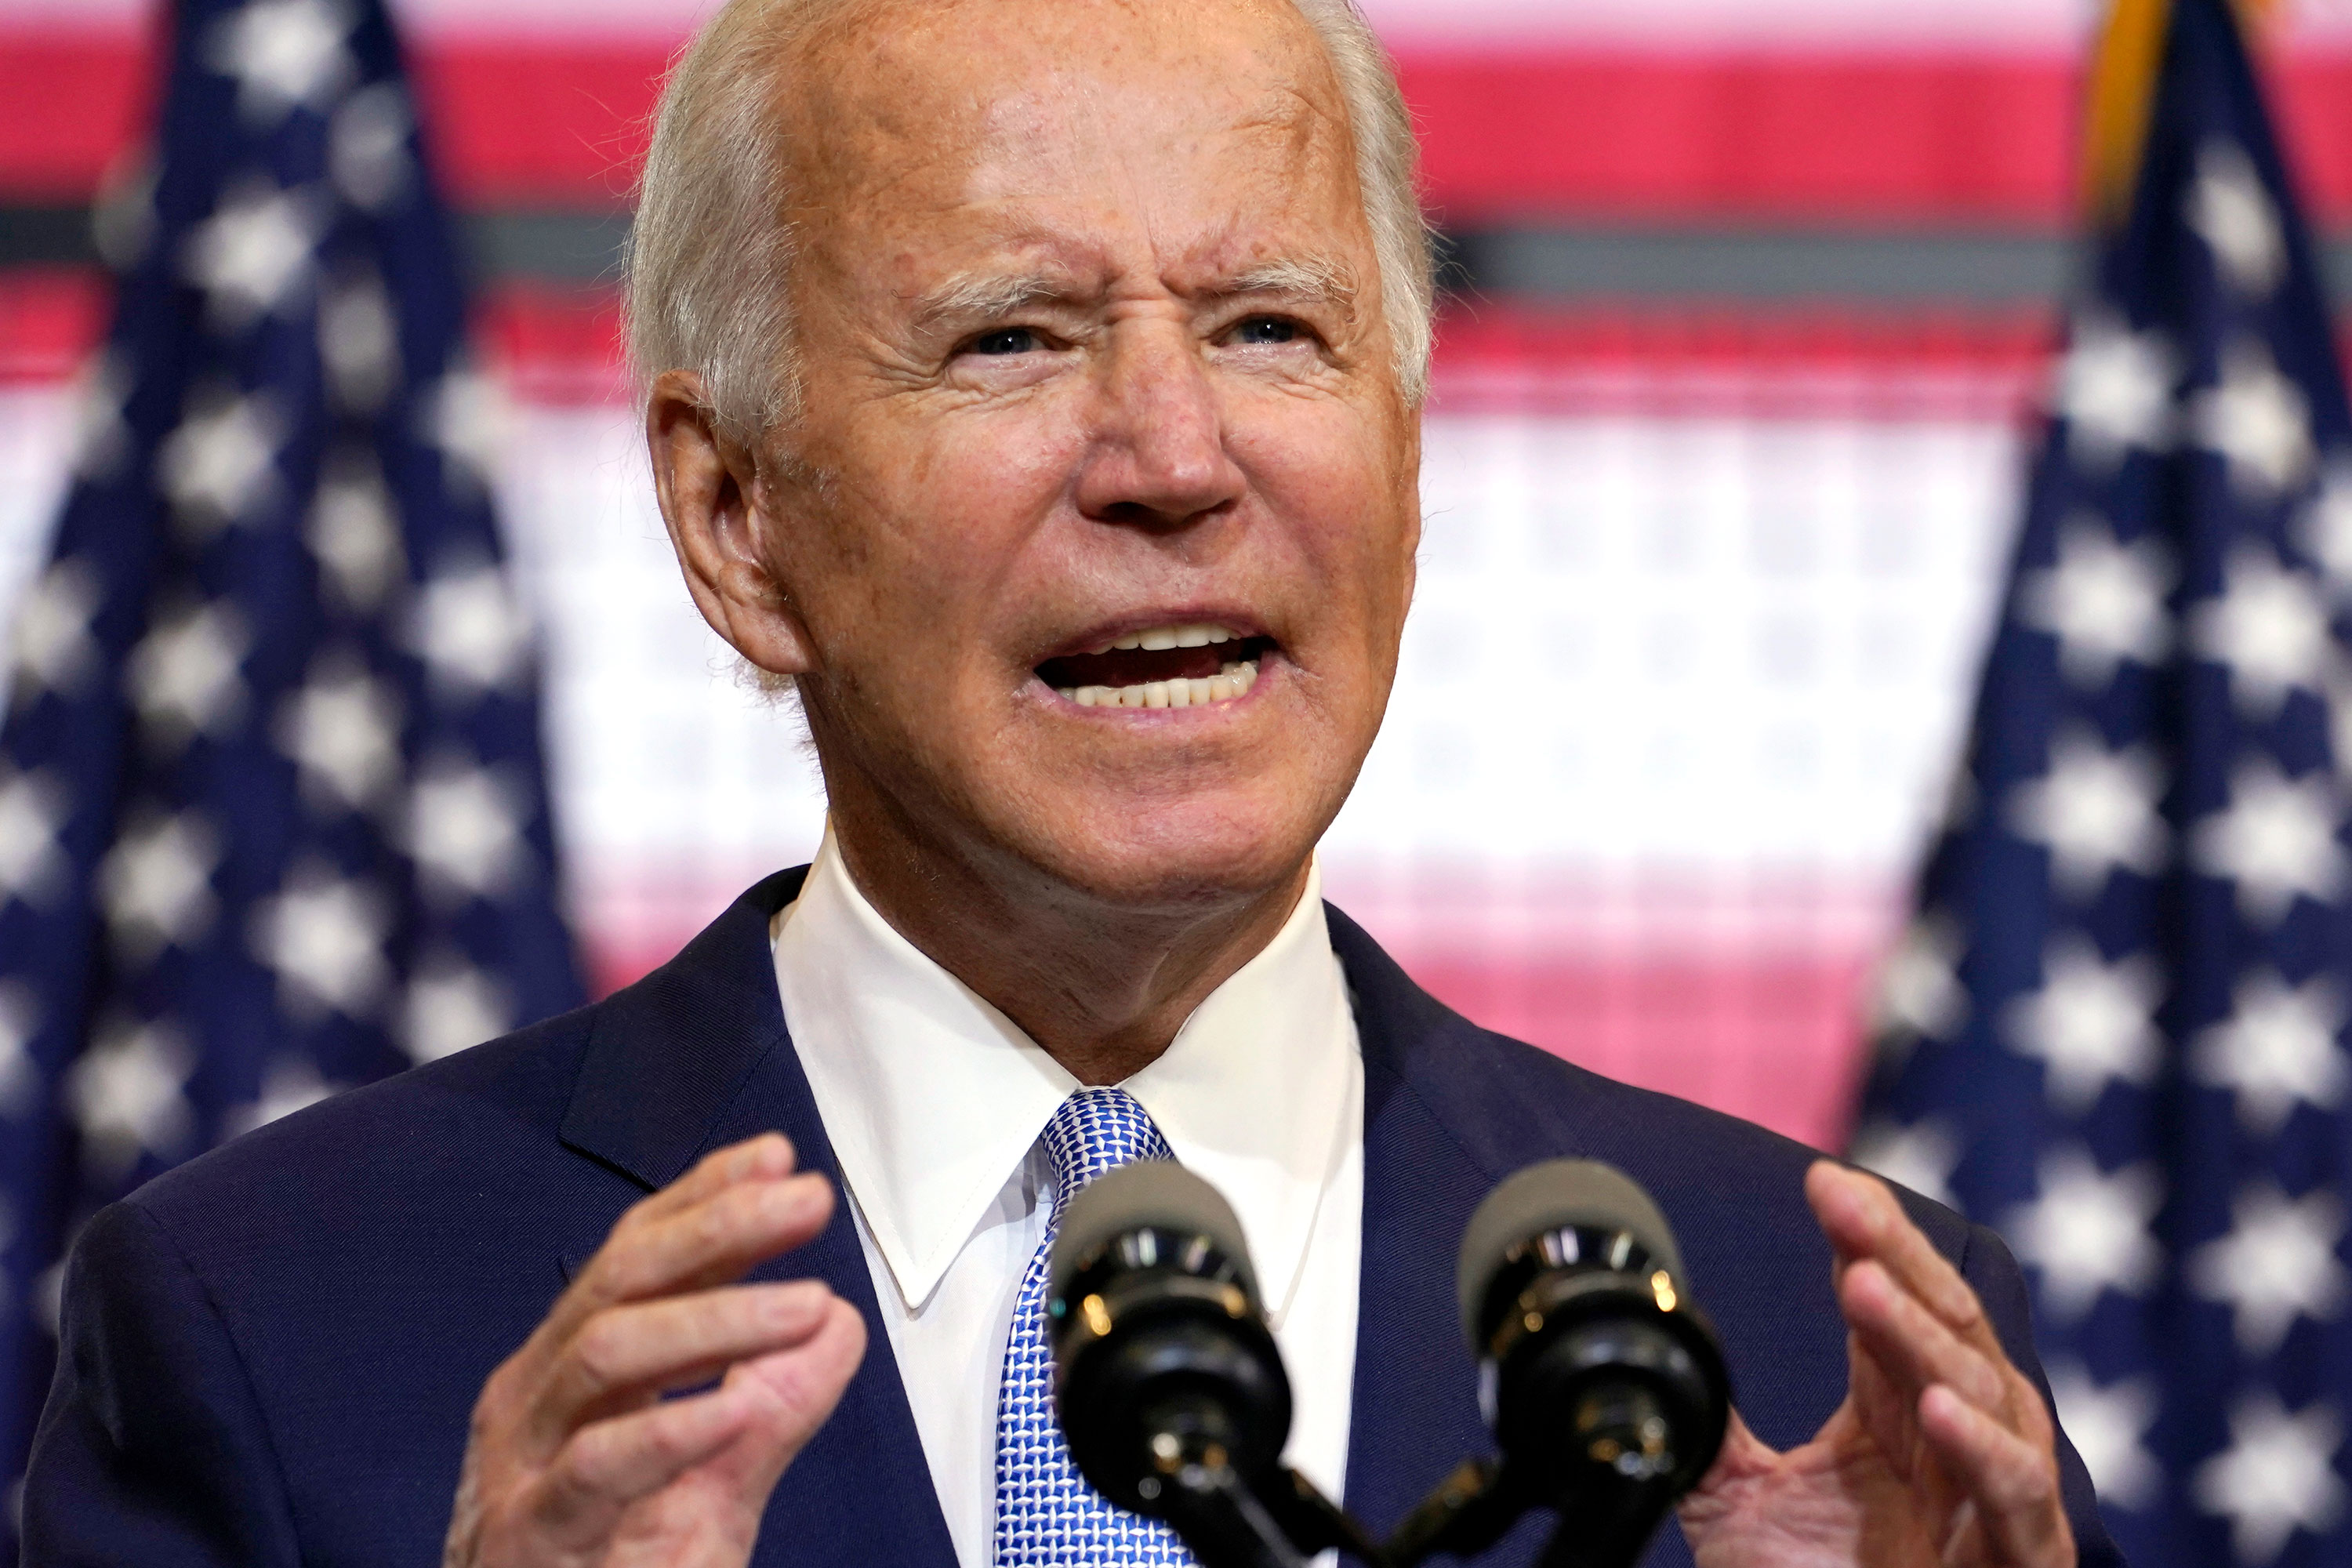 Democratic presidential candidate Joe Biden speaks at a campaign event at Mill 19 in Pittsburgh, Pennsylvania, on August 31.